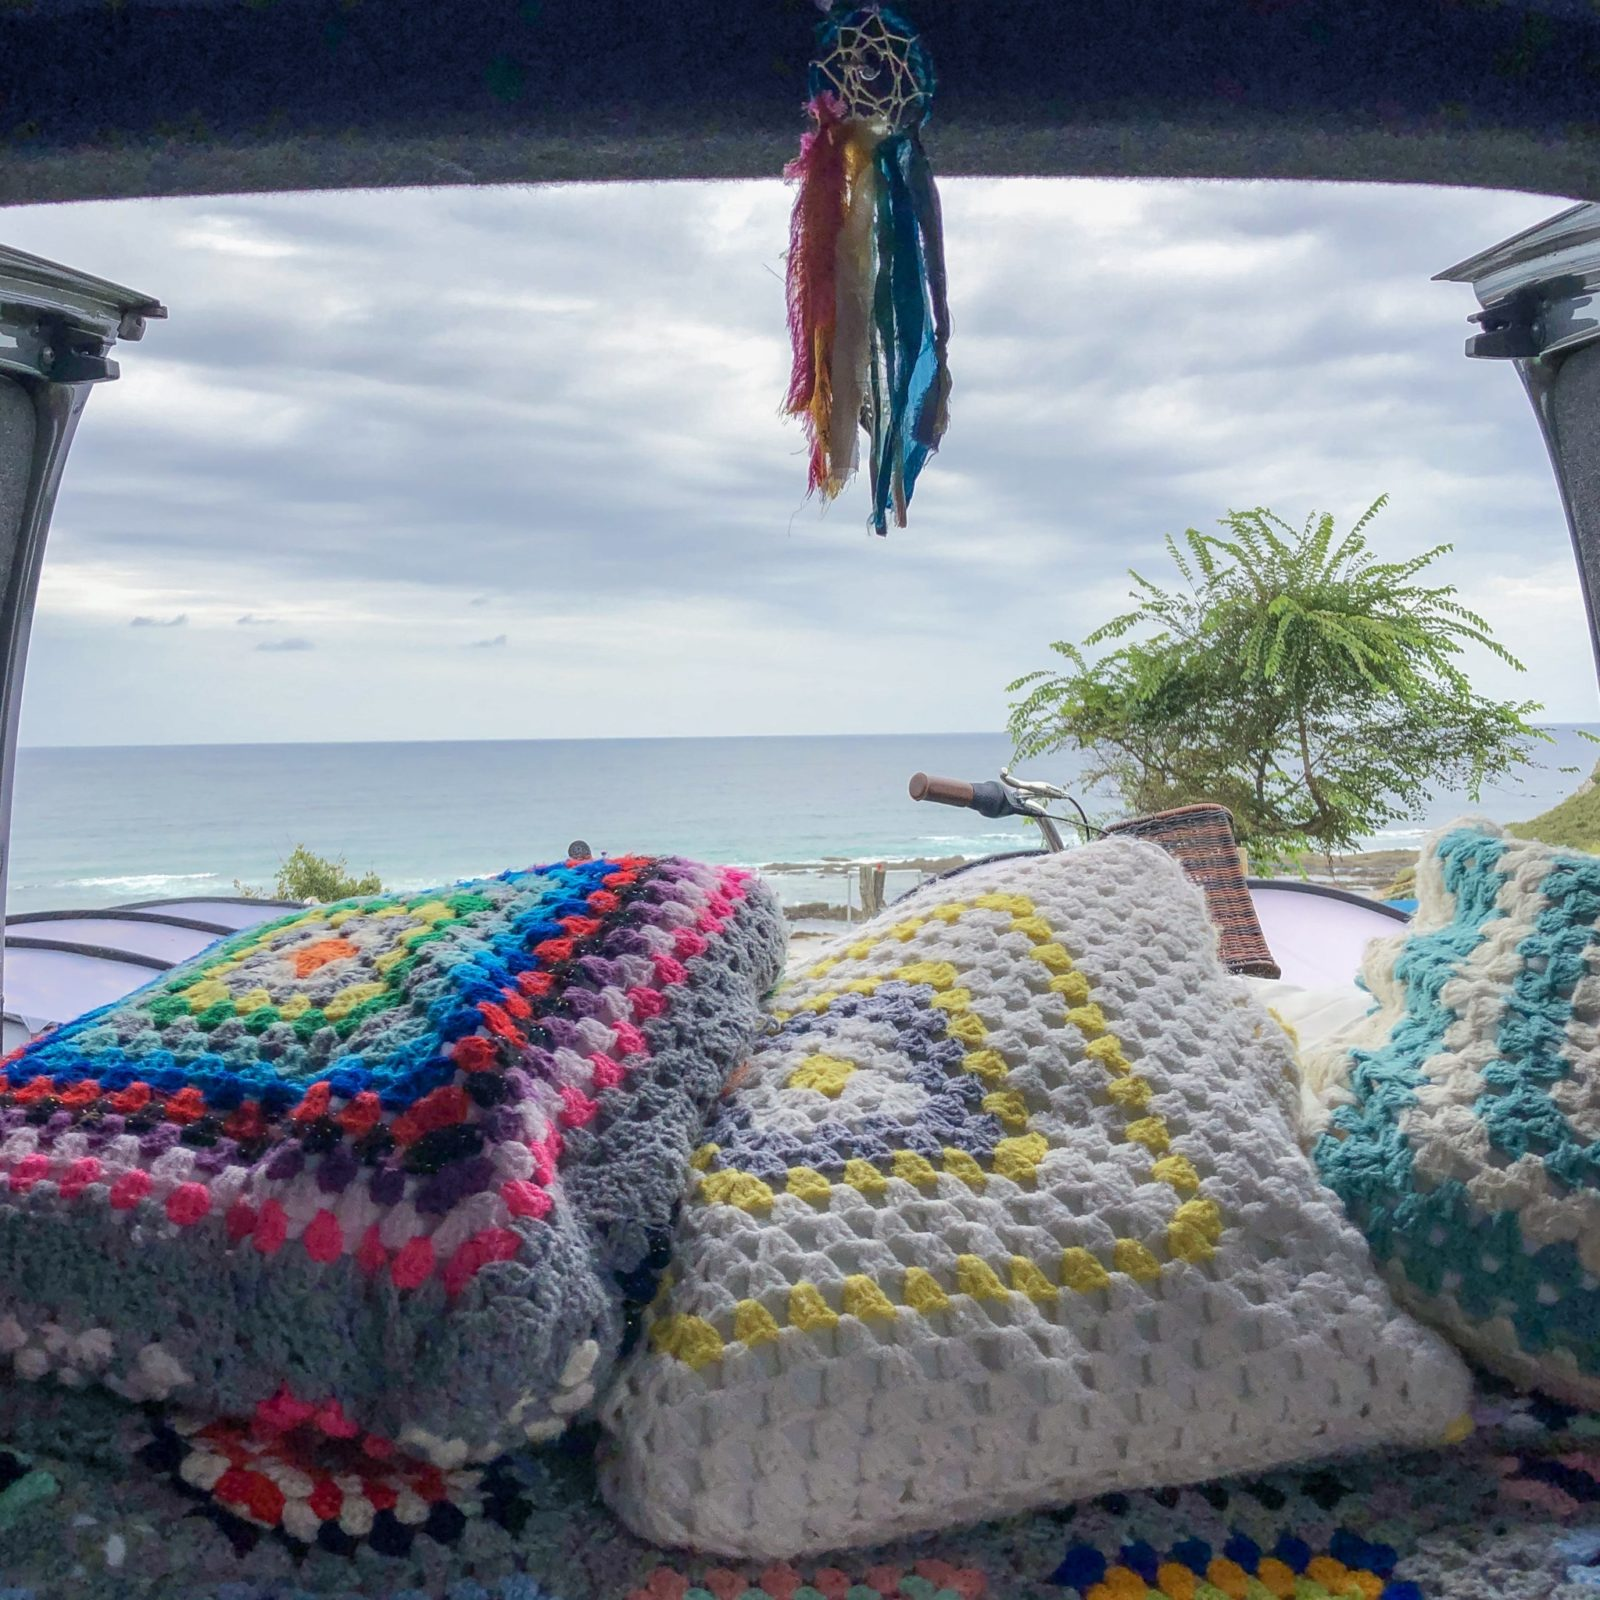 Boho accessories for vanlife: Homemade decor ideas for camper